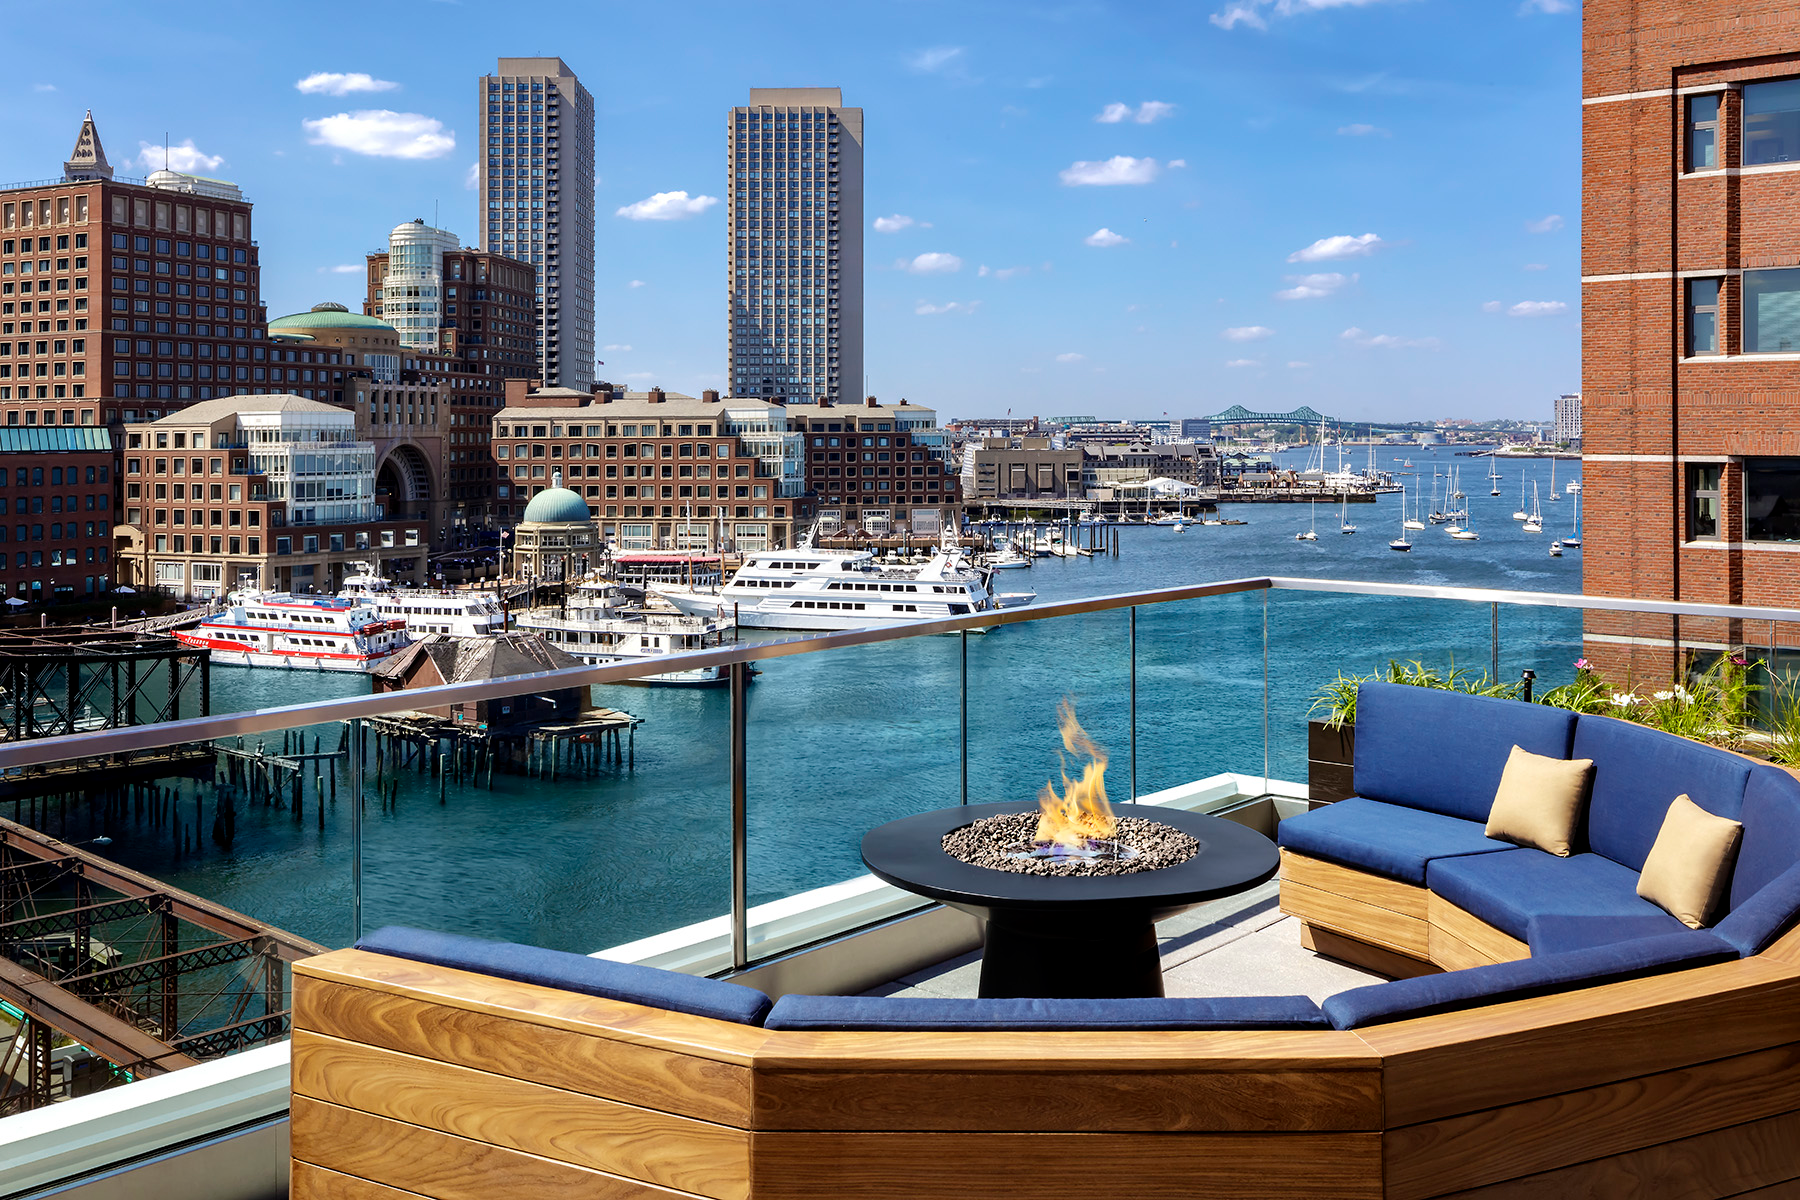 The Best Boston Rooftop Bars You Need To Know About With Images Best Rooftop Bars Rooftop Bar Harbor Hotel